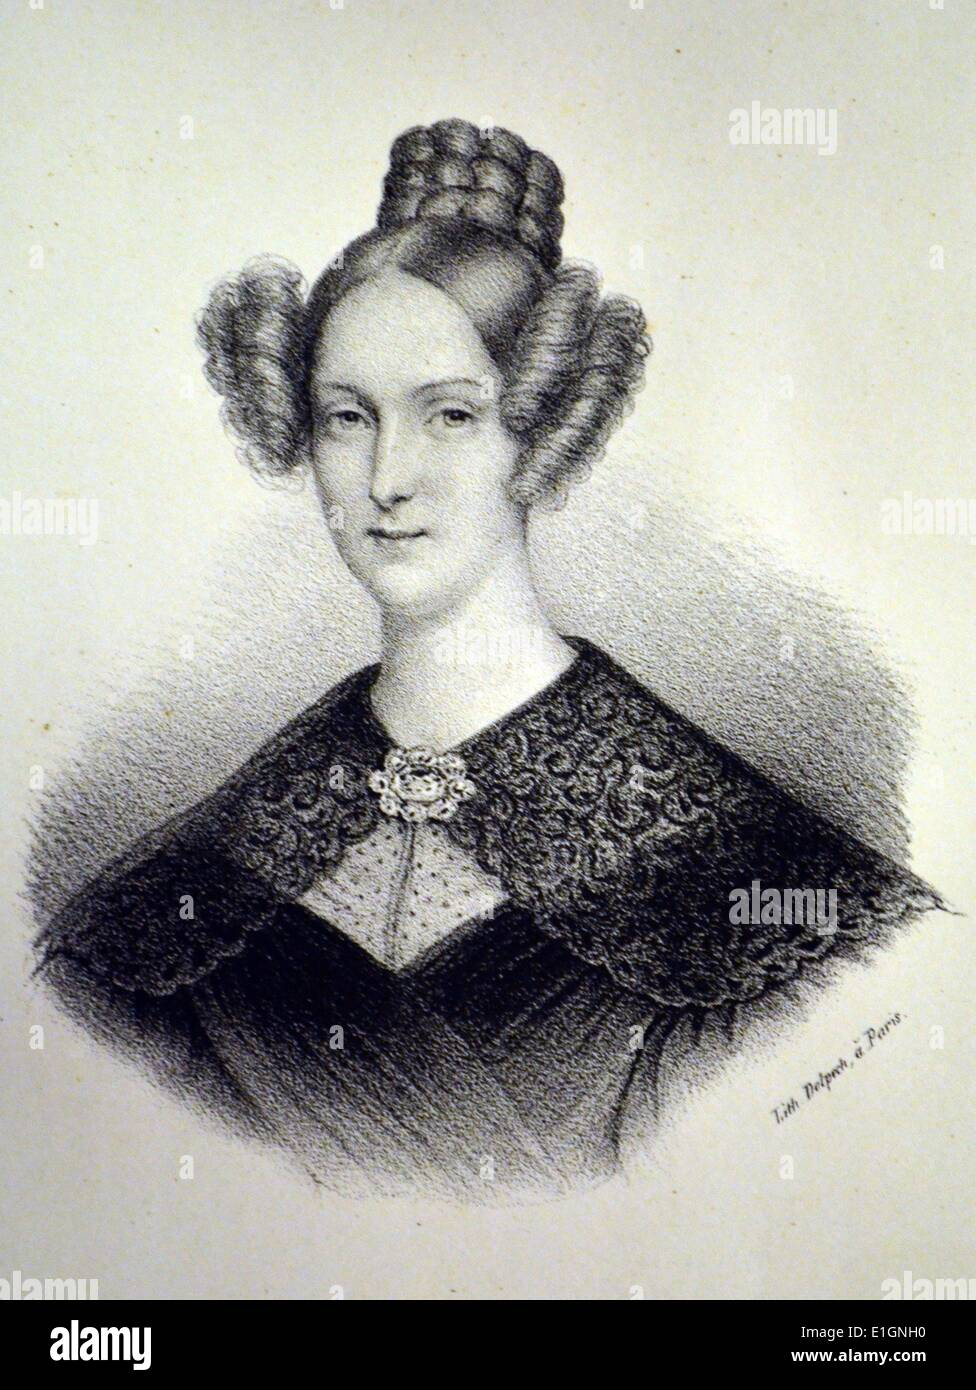 Louise Marie Therese of Orleans (1812-1850) Queen consort of the Belgians 1832-1850.  Lithograph, Paris, c1840. - Stock Image